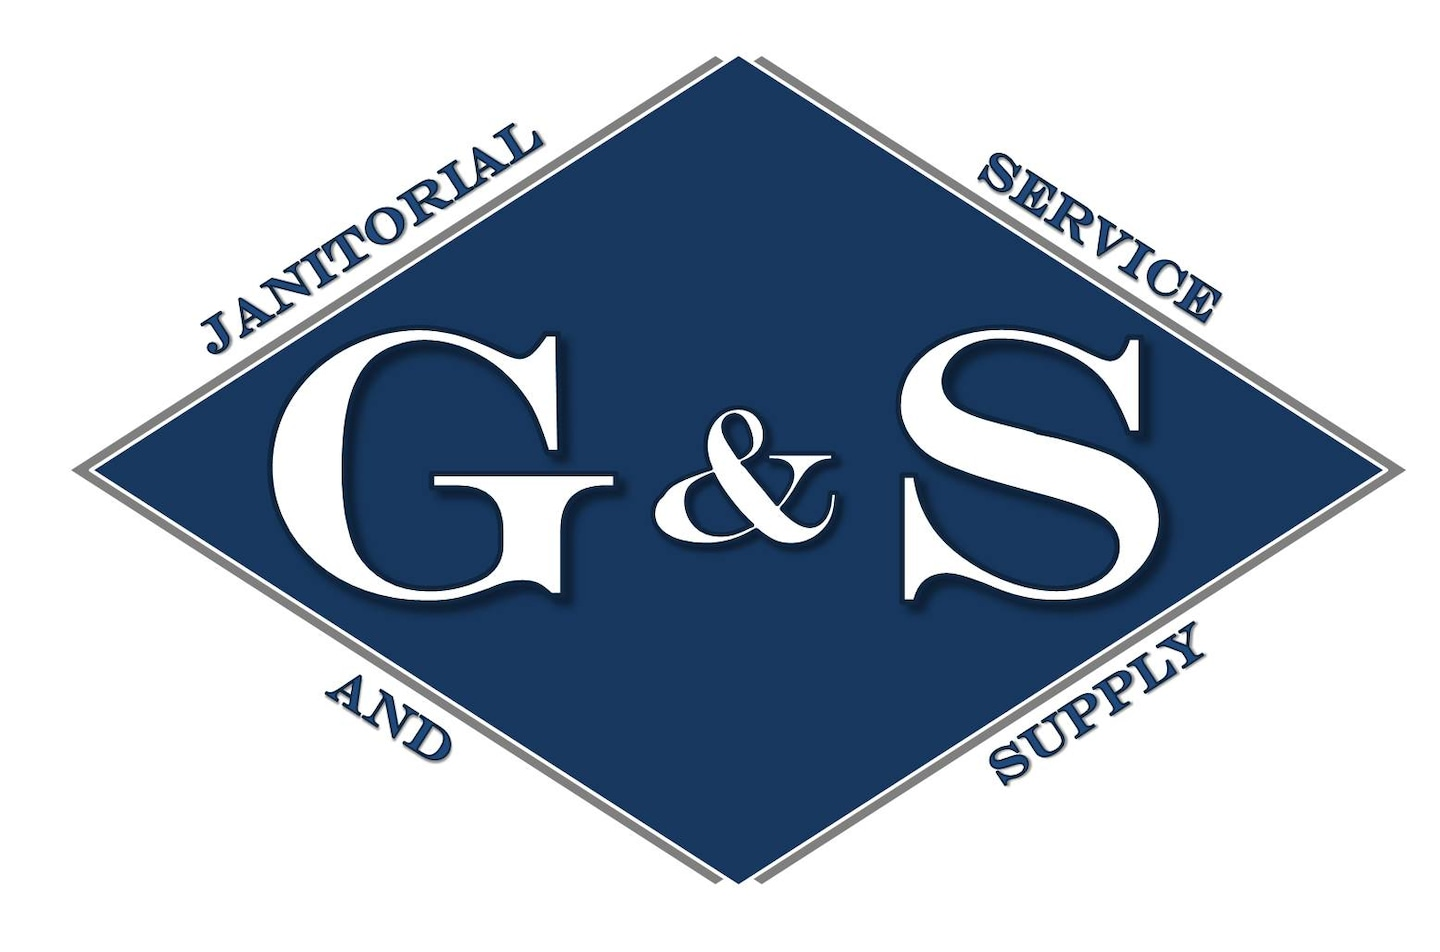 G & S Janitorial